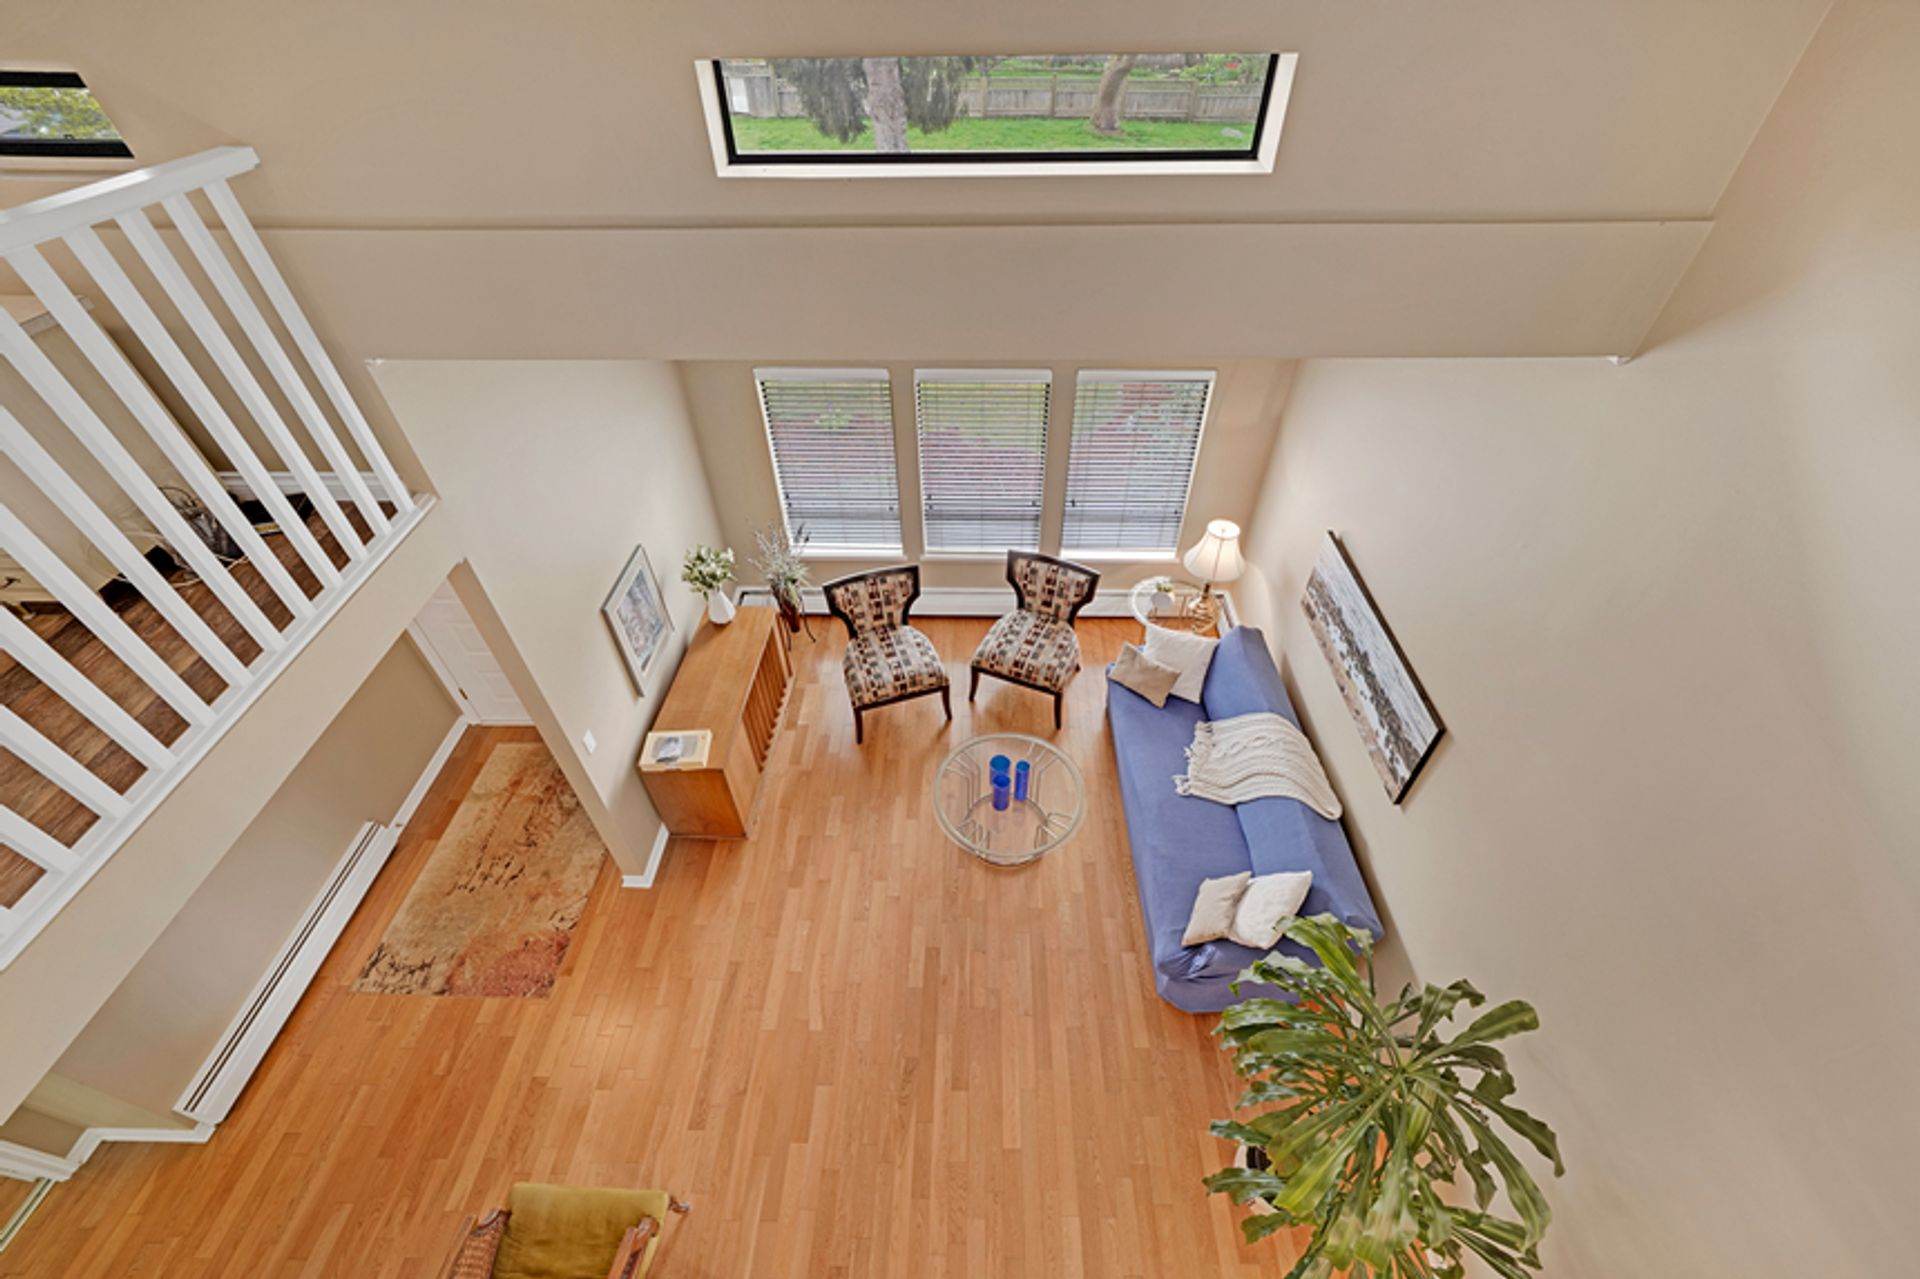 3k-above-view-from-loft-27 at 836 Irvine Street, Meadow Brook, Coquitlam